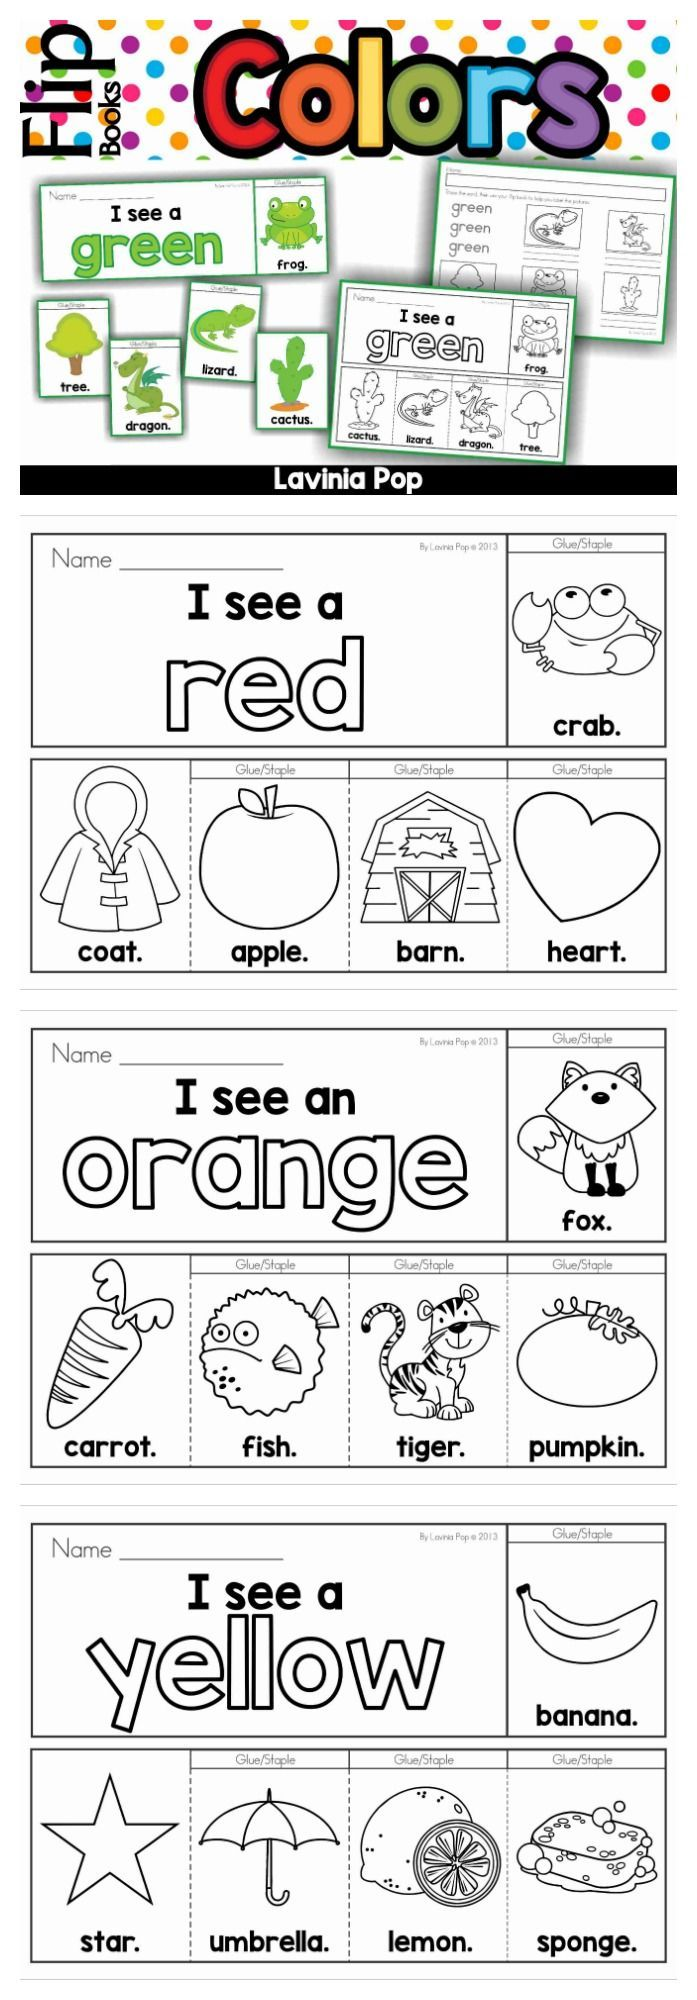 Color flip books in color and black & white. A recording page is also included for each booklet.